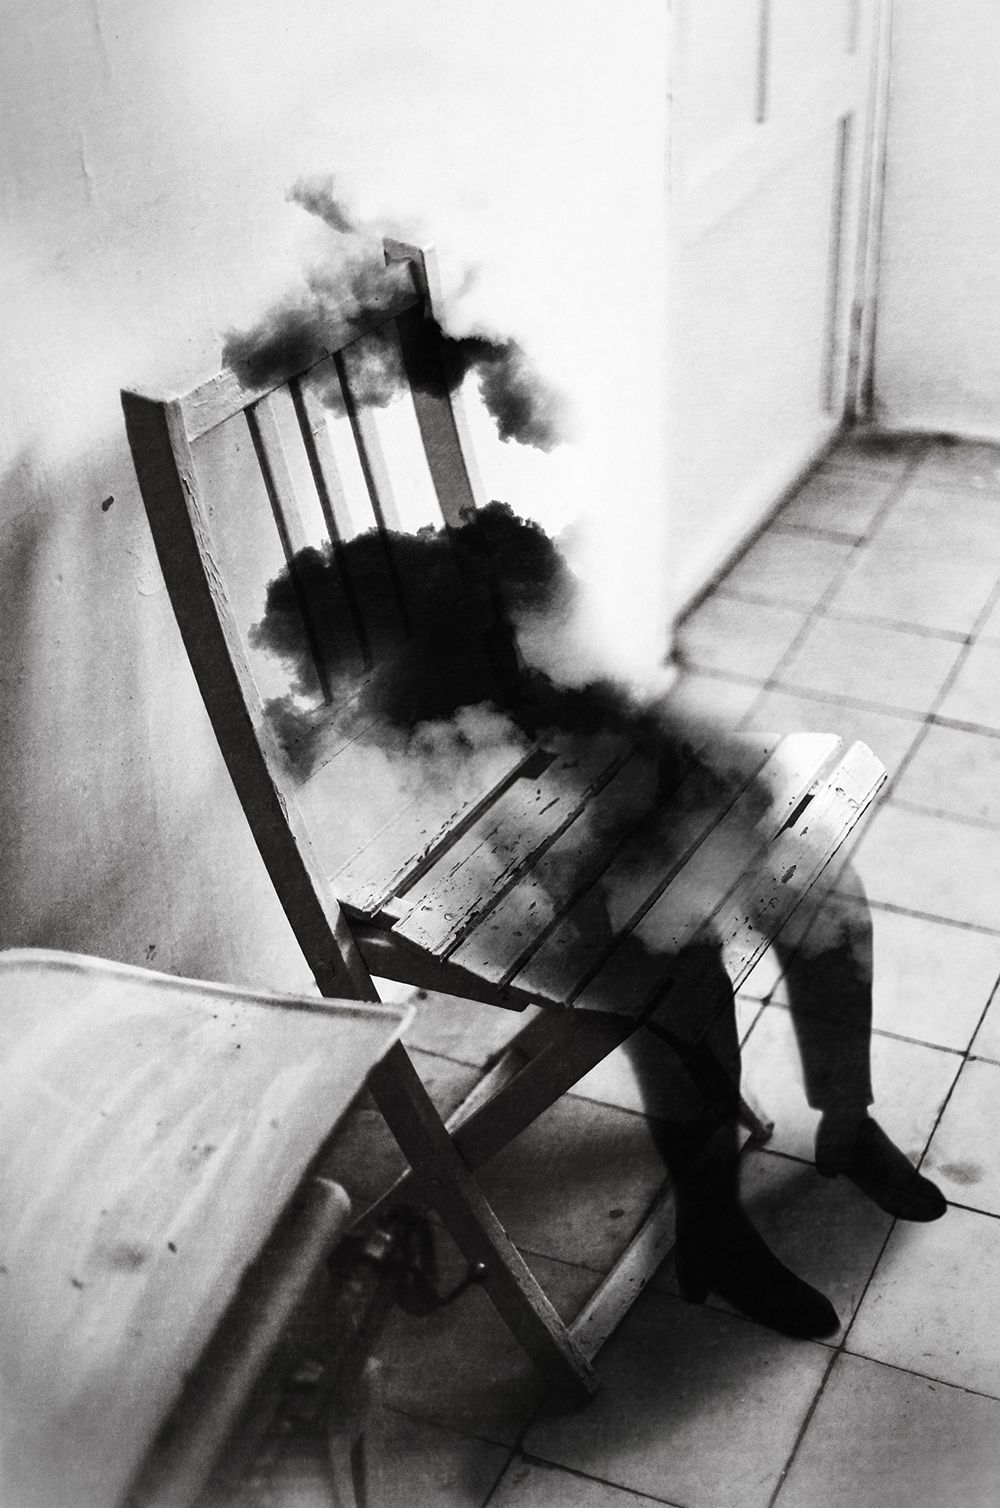 BW Film Photography Silvia Grav Composite Photography - Photographer uses photoshop to create surreal dreamy composite images